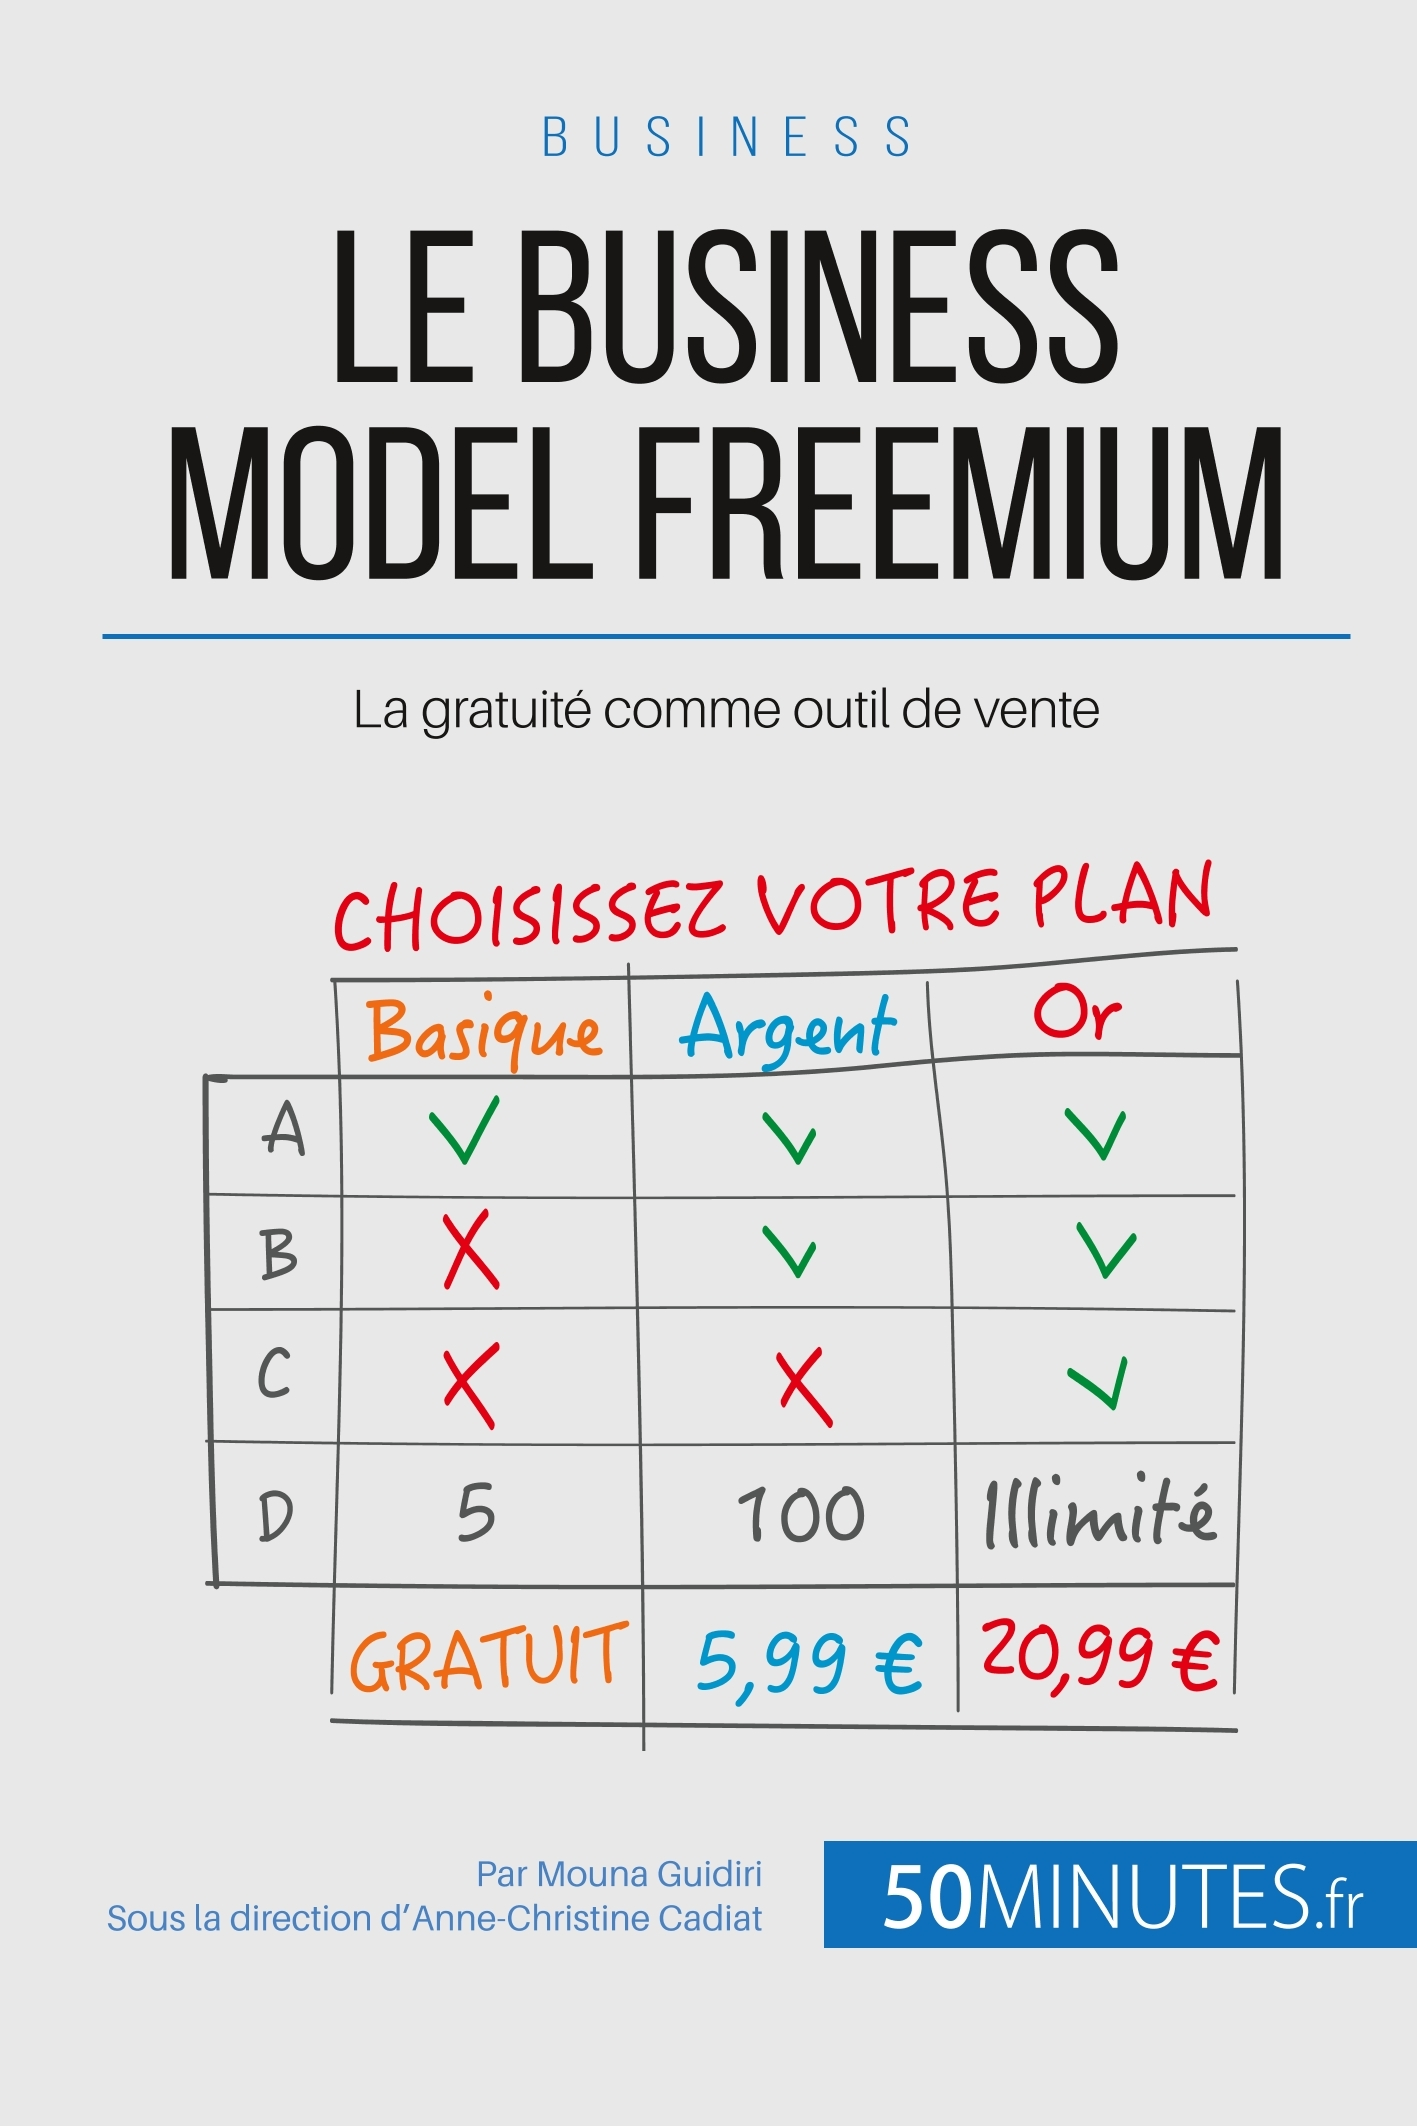 LE FREEMIUM BUSINESS MODEL DU WEB